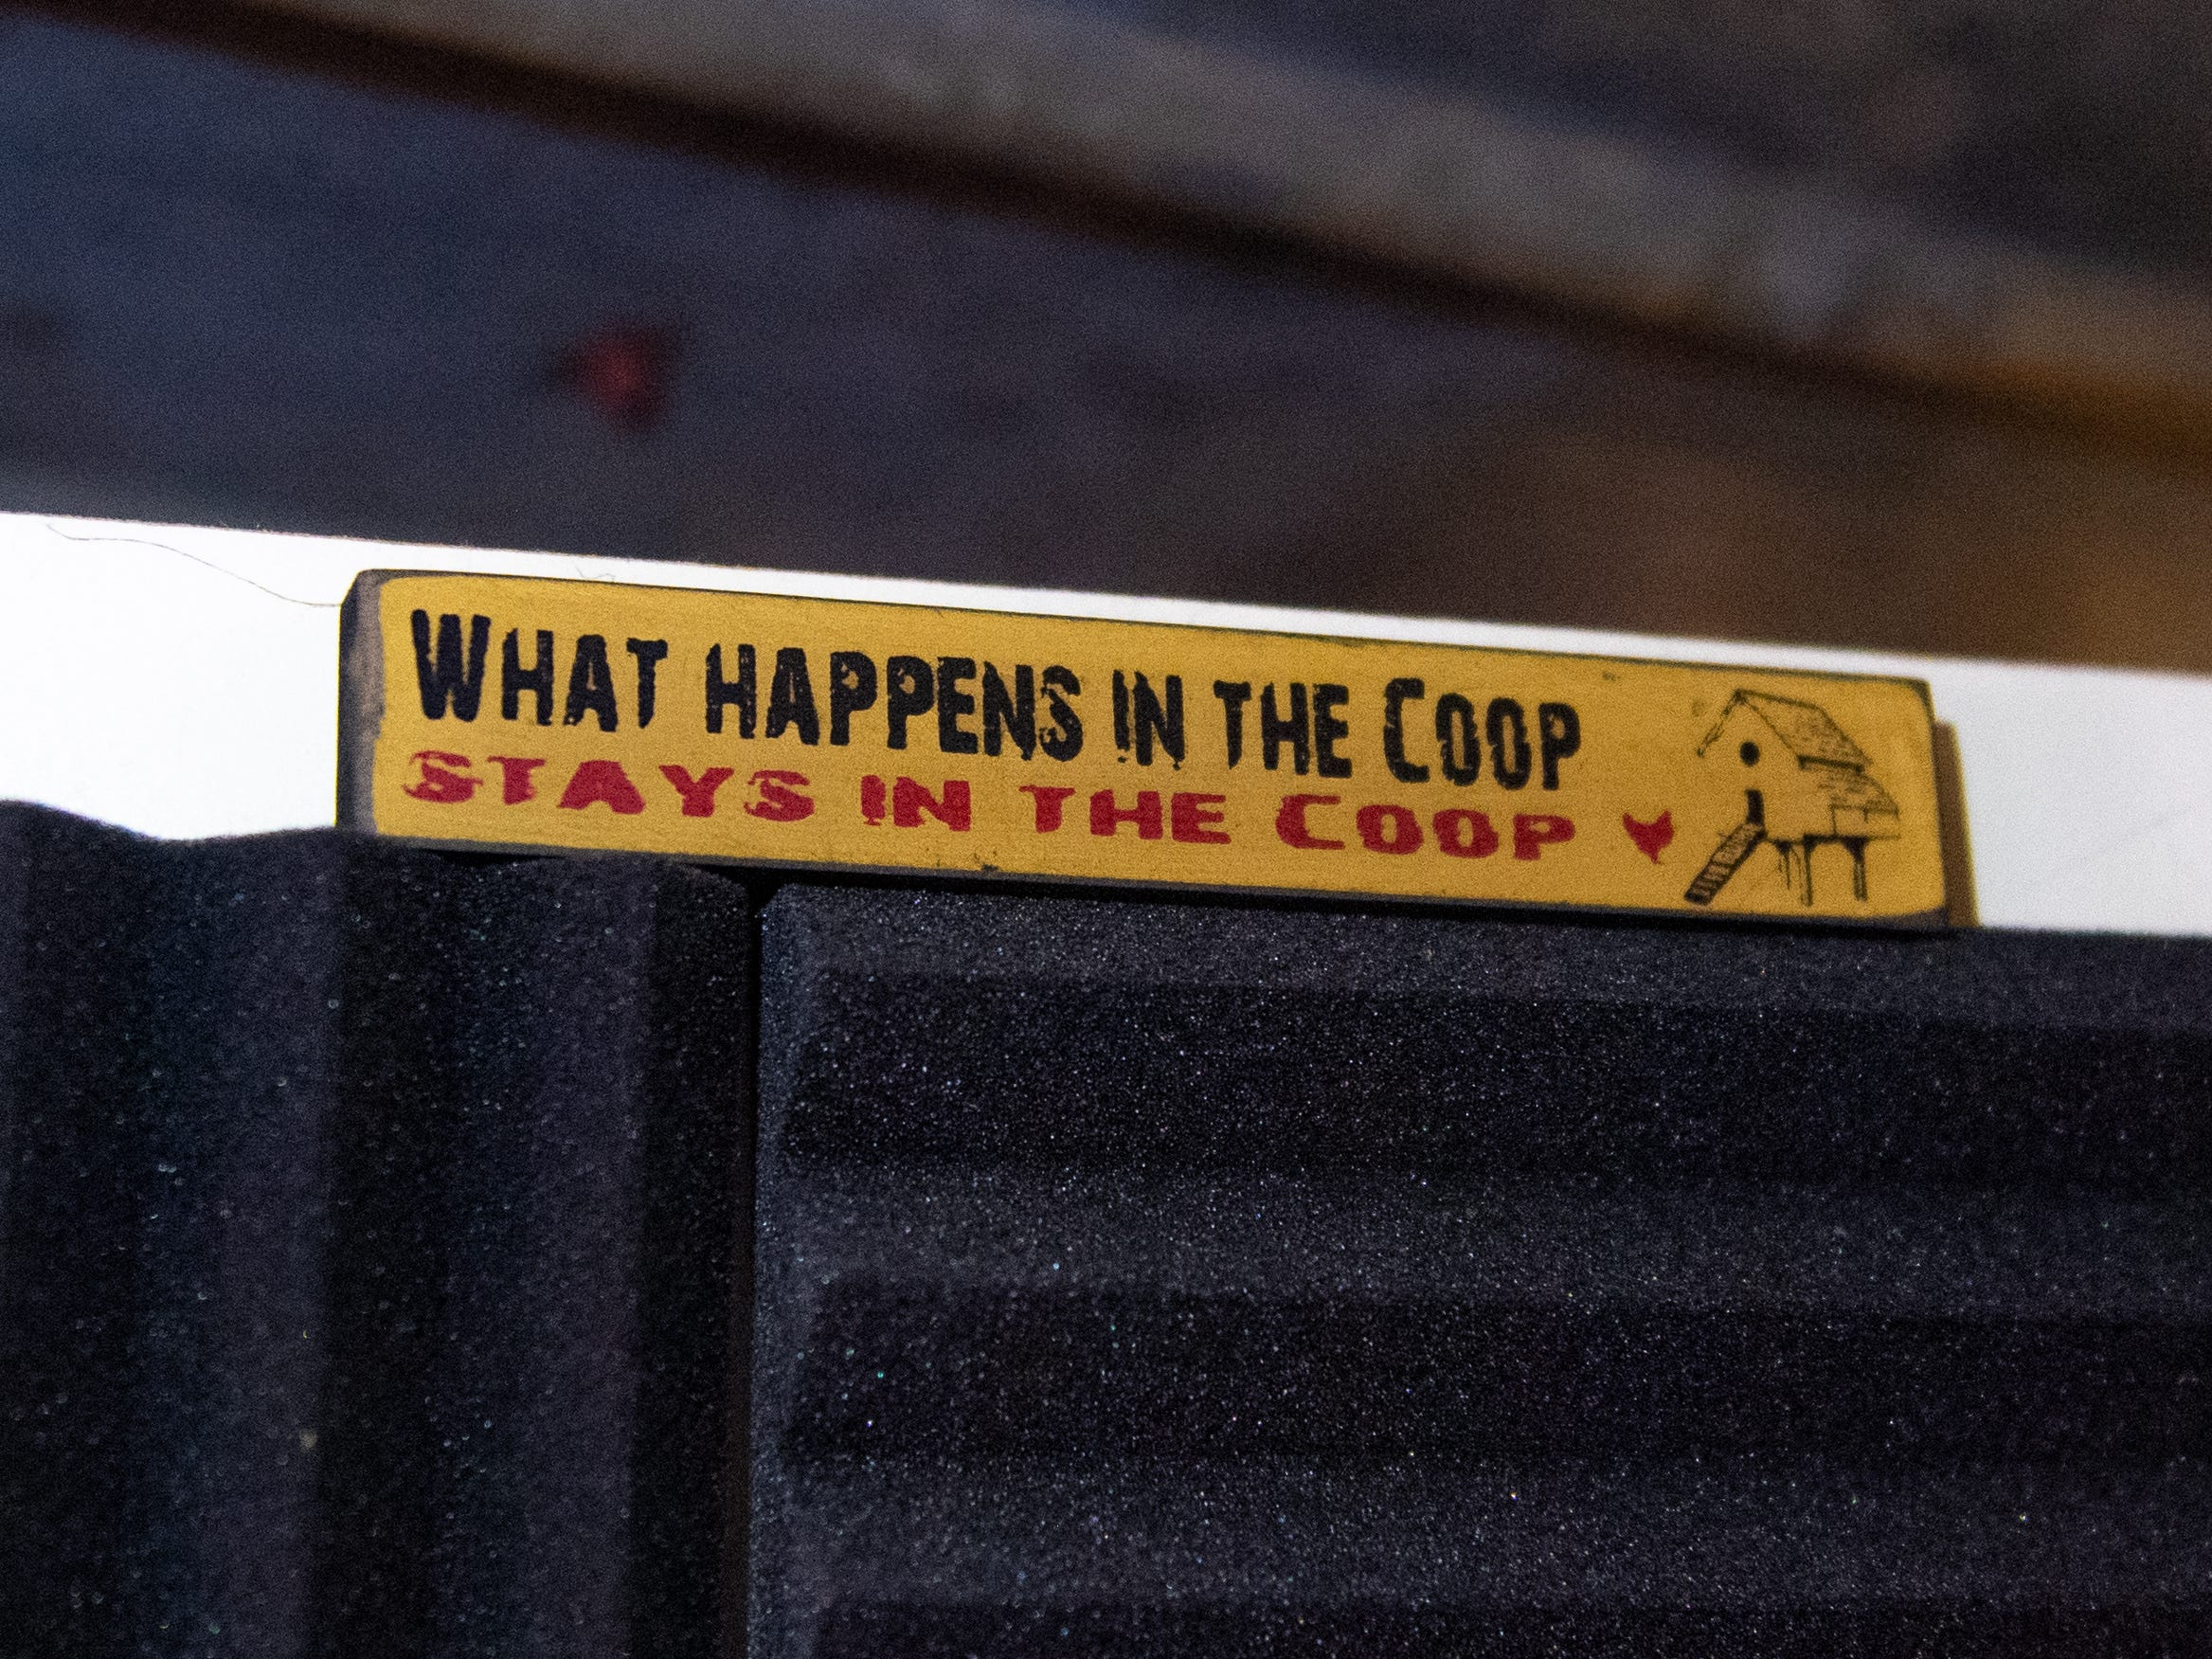 """There are reminders throughout the """"Crooked Coop Records"""" studio that the space was once a chicken coop. Jake Puliti, an """"American Idol"""" hopeful, whose audition is scheduled to air March 10, and his friends regularly jam and record music in the studio."""